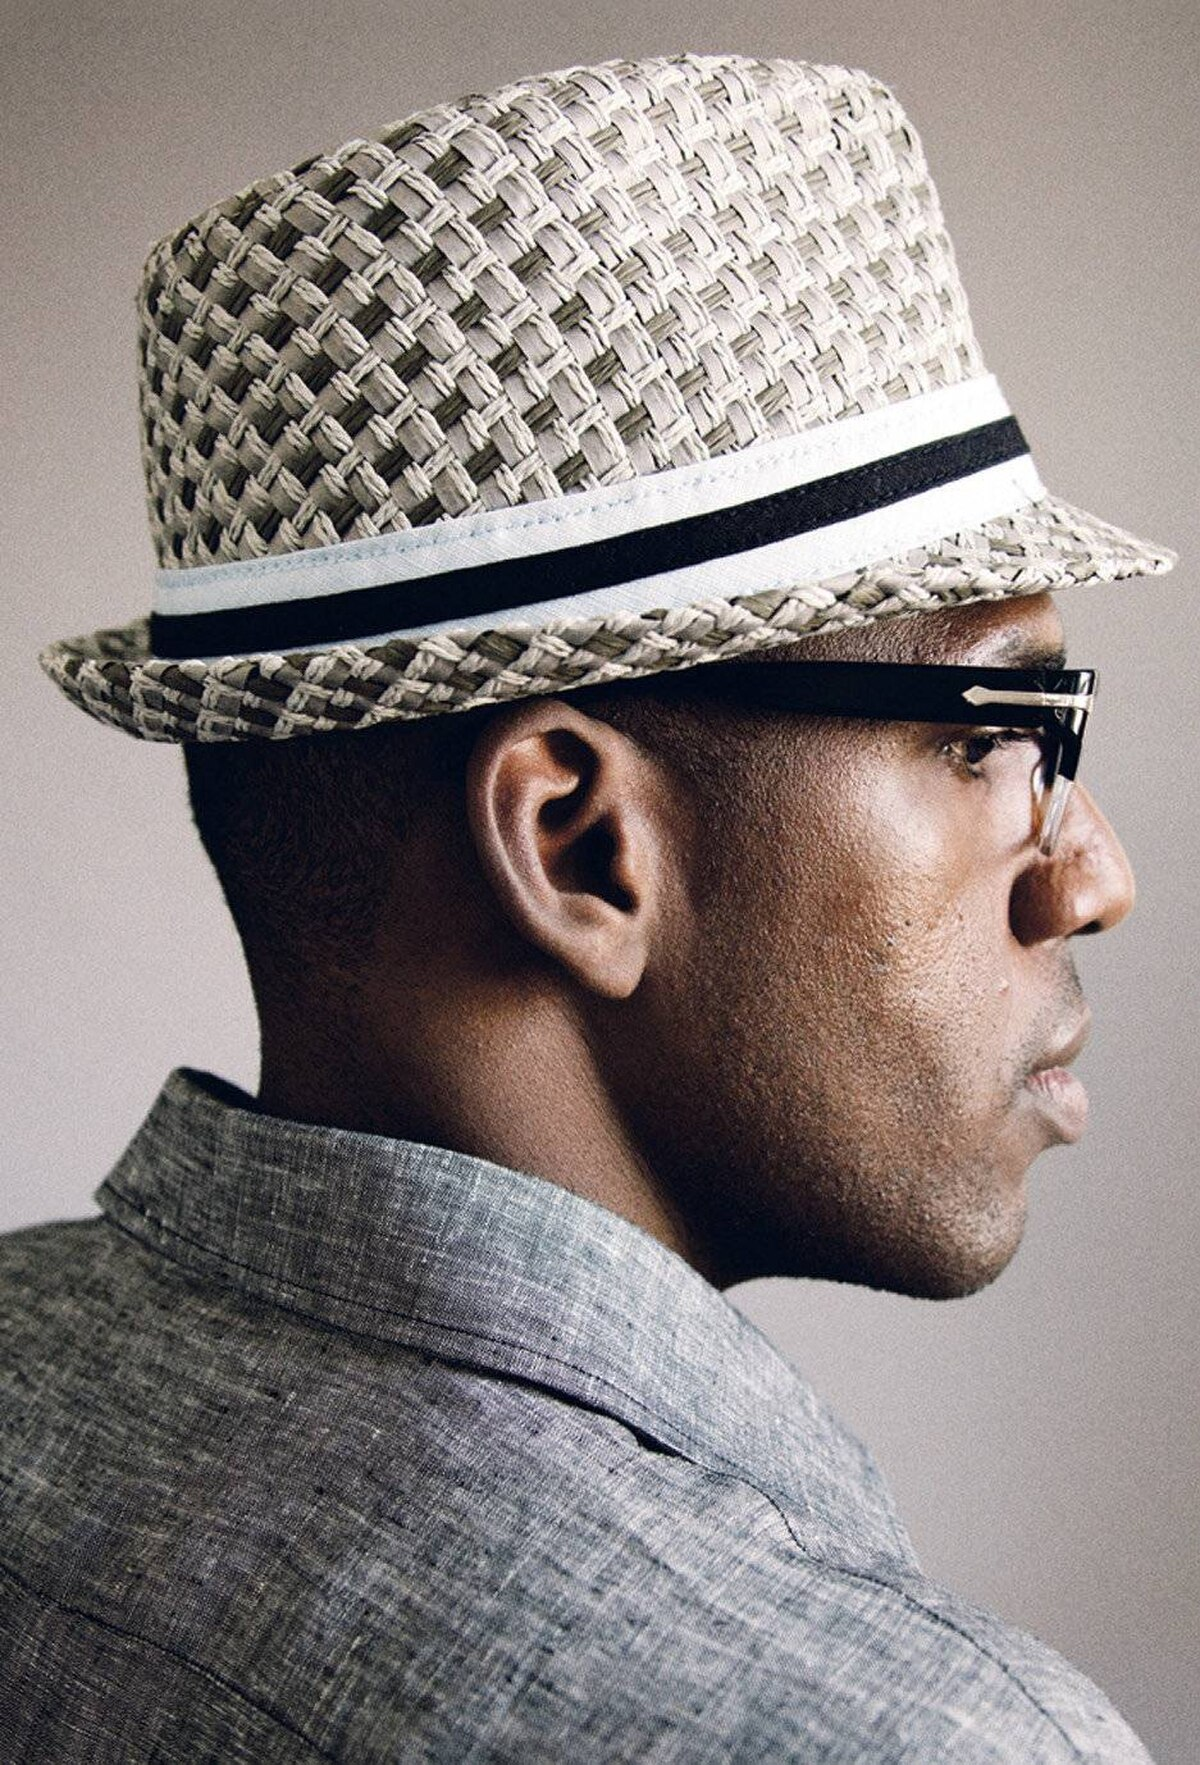 'For years I avoided wearing hats as I thought my head was too large. But I quickly got over that insecurity in my early 20s with a paper-boy cap and never looked back. This summer, I?m thinking I'll rock a fedora. They protect your skin from the sun and can add dimension to your personality.' -Vaughn Stafford Gray, concierge at Harry Rosen in Toronto Goorin Brothers fedora, $55, Harry Rosen Private Label shirt, $125 at Harry Rosen (www.harryrosen.com)